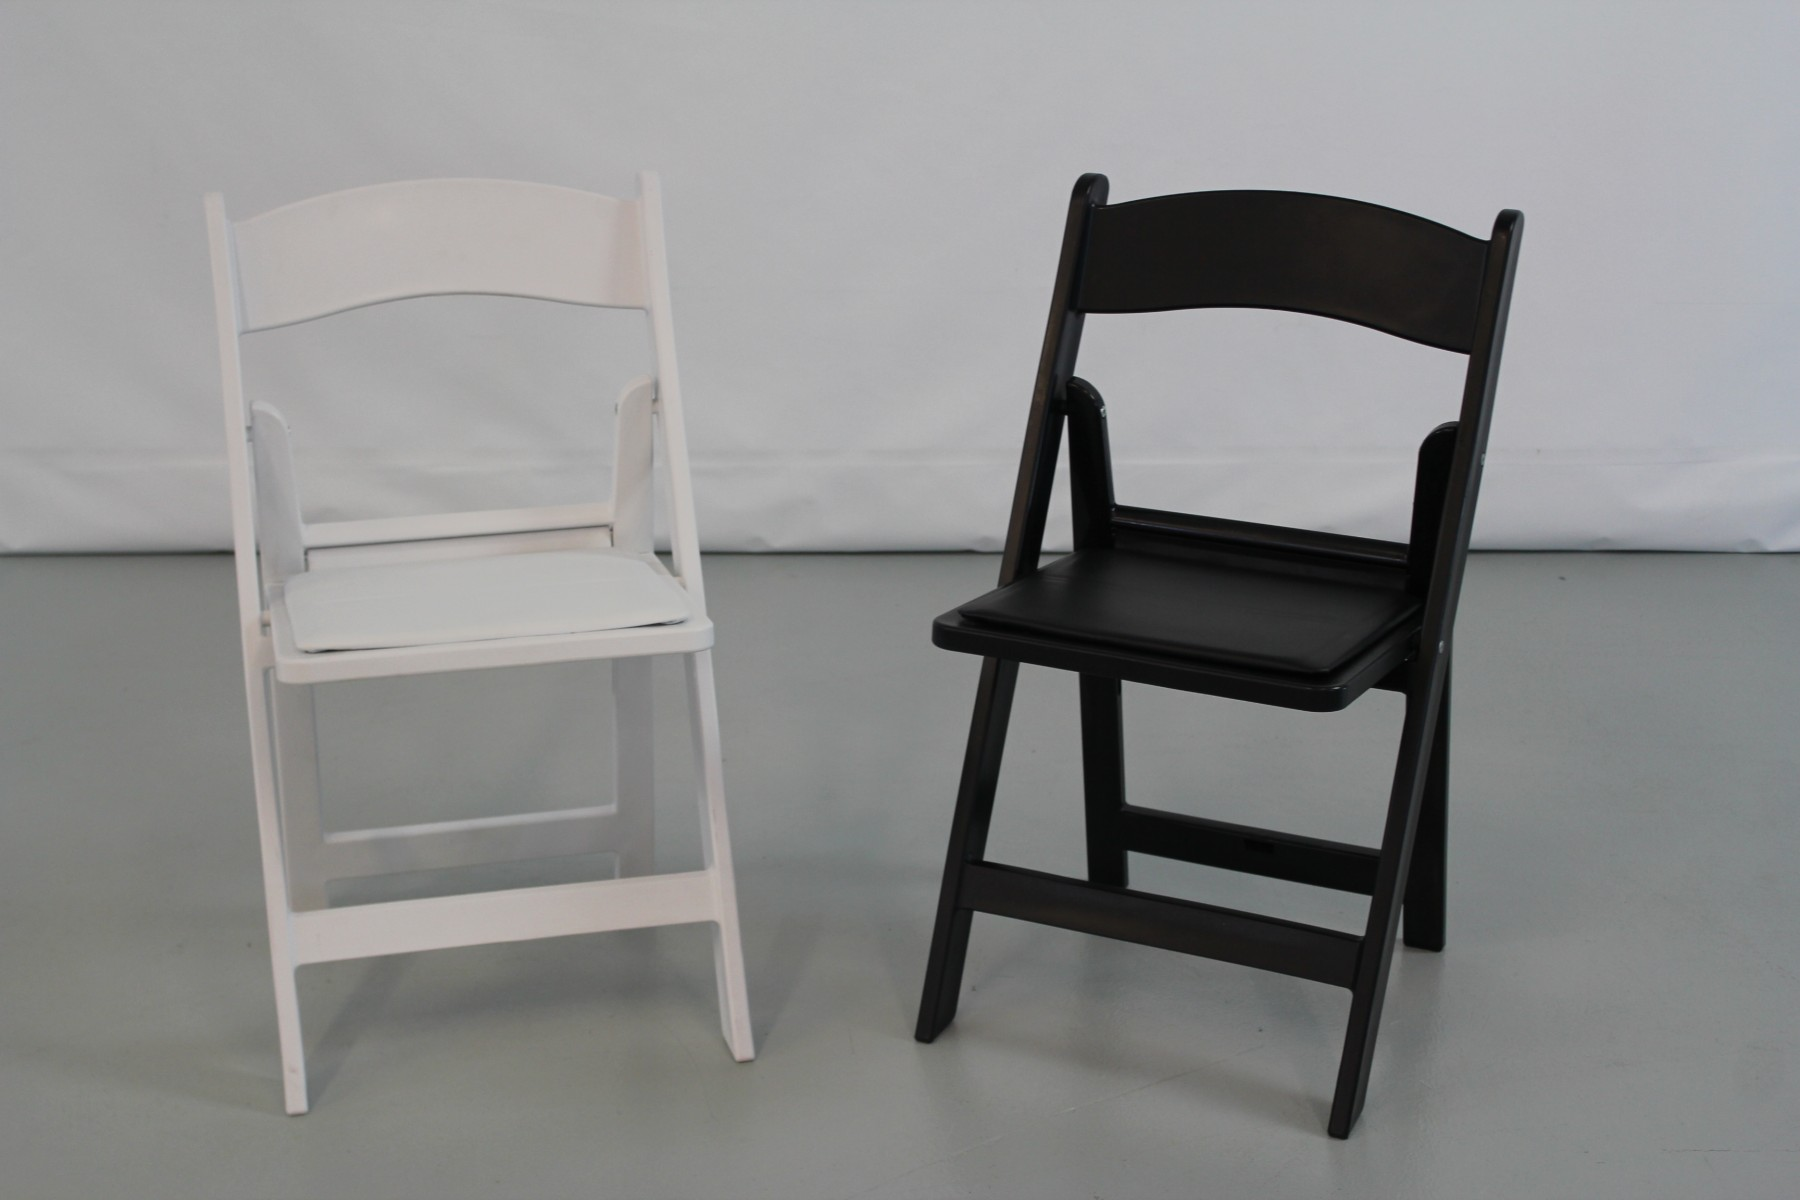 Resin Folding Chairs Oxford White Resin Folding Chair Pallet Folding Chairs